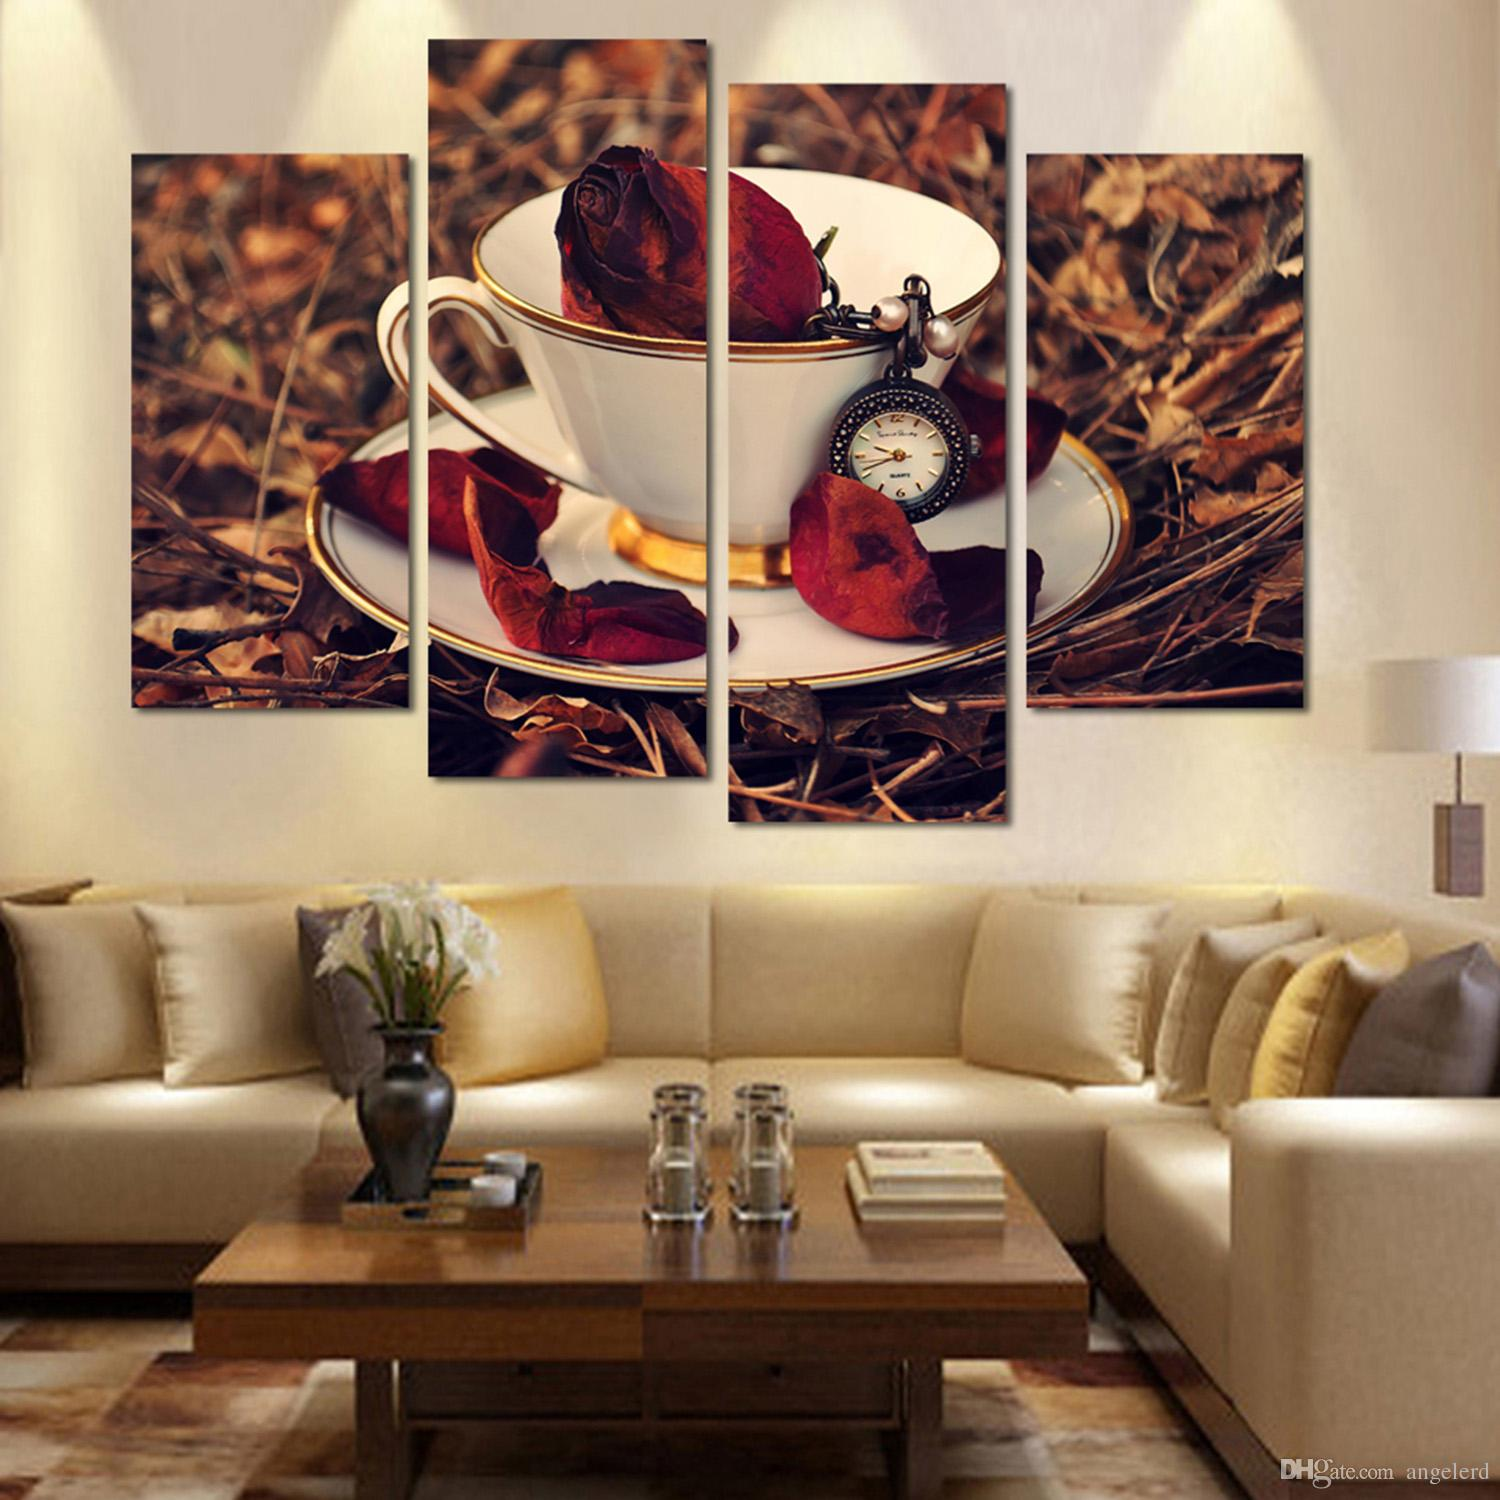 Kitchen Canvas Wall Art hot kitchen canvas wall art modern nostalgic coffee flower